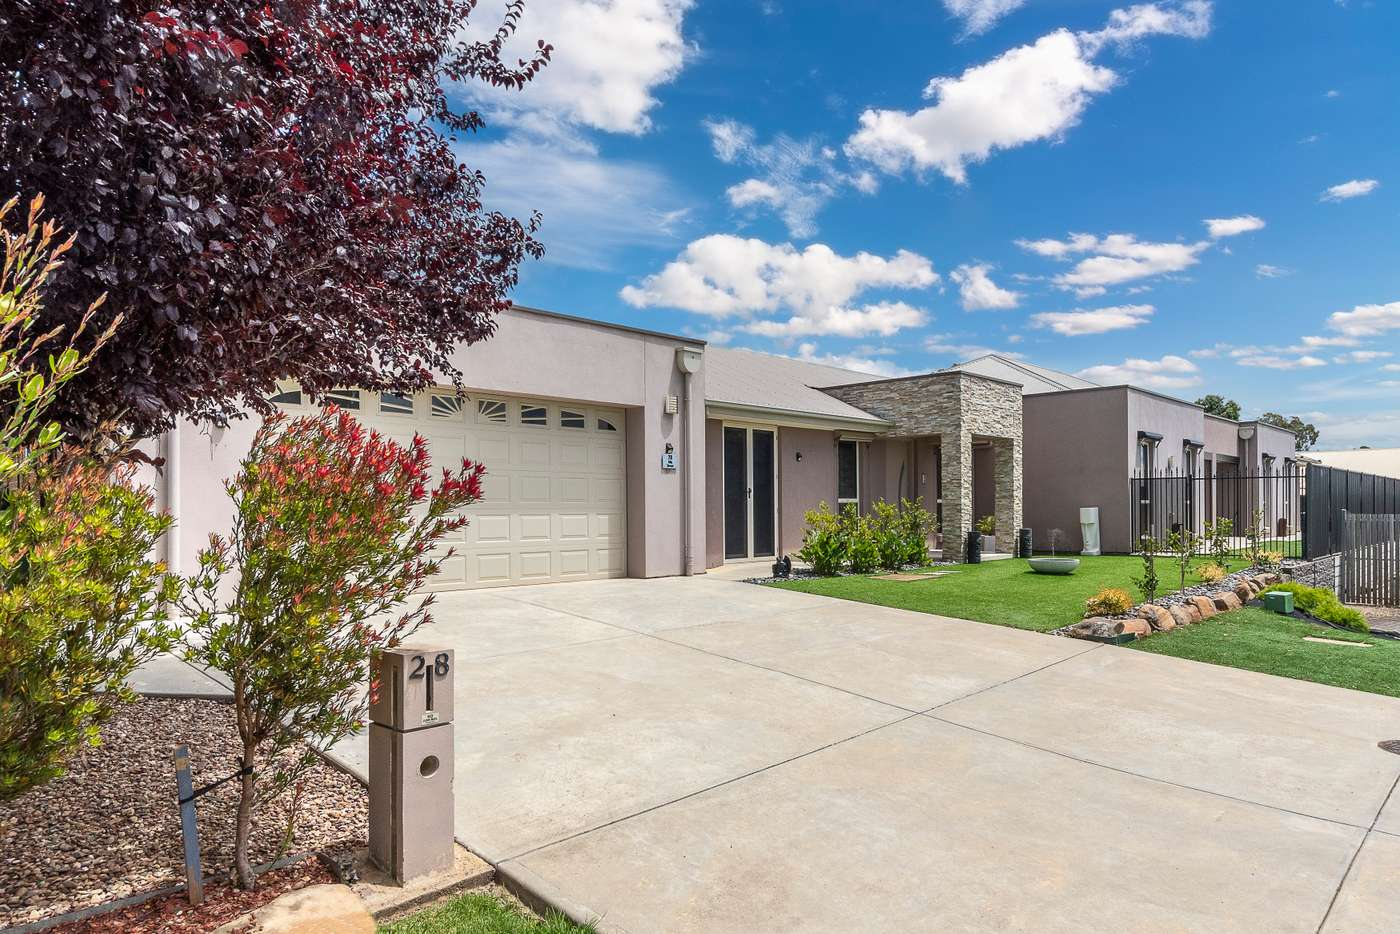 Main view of Homely house listing, 28 Tilly Street, Mount Barker SA 5251